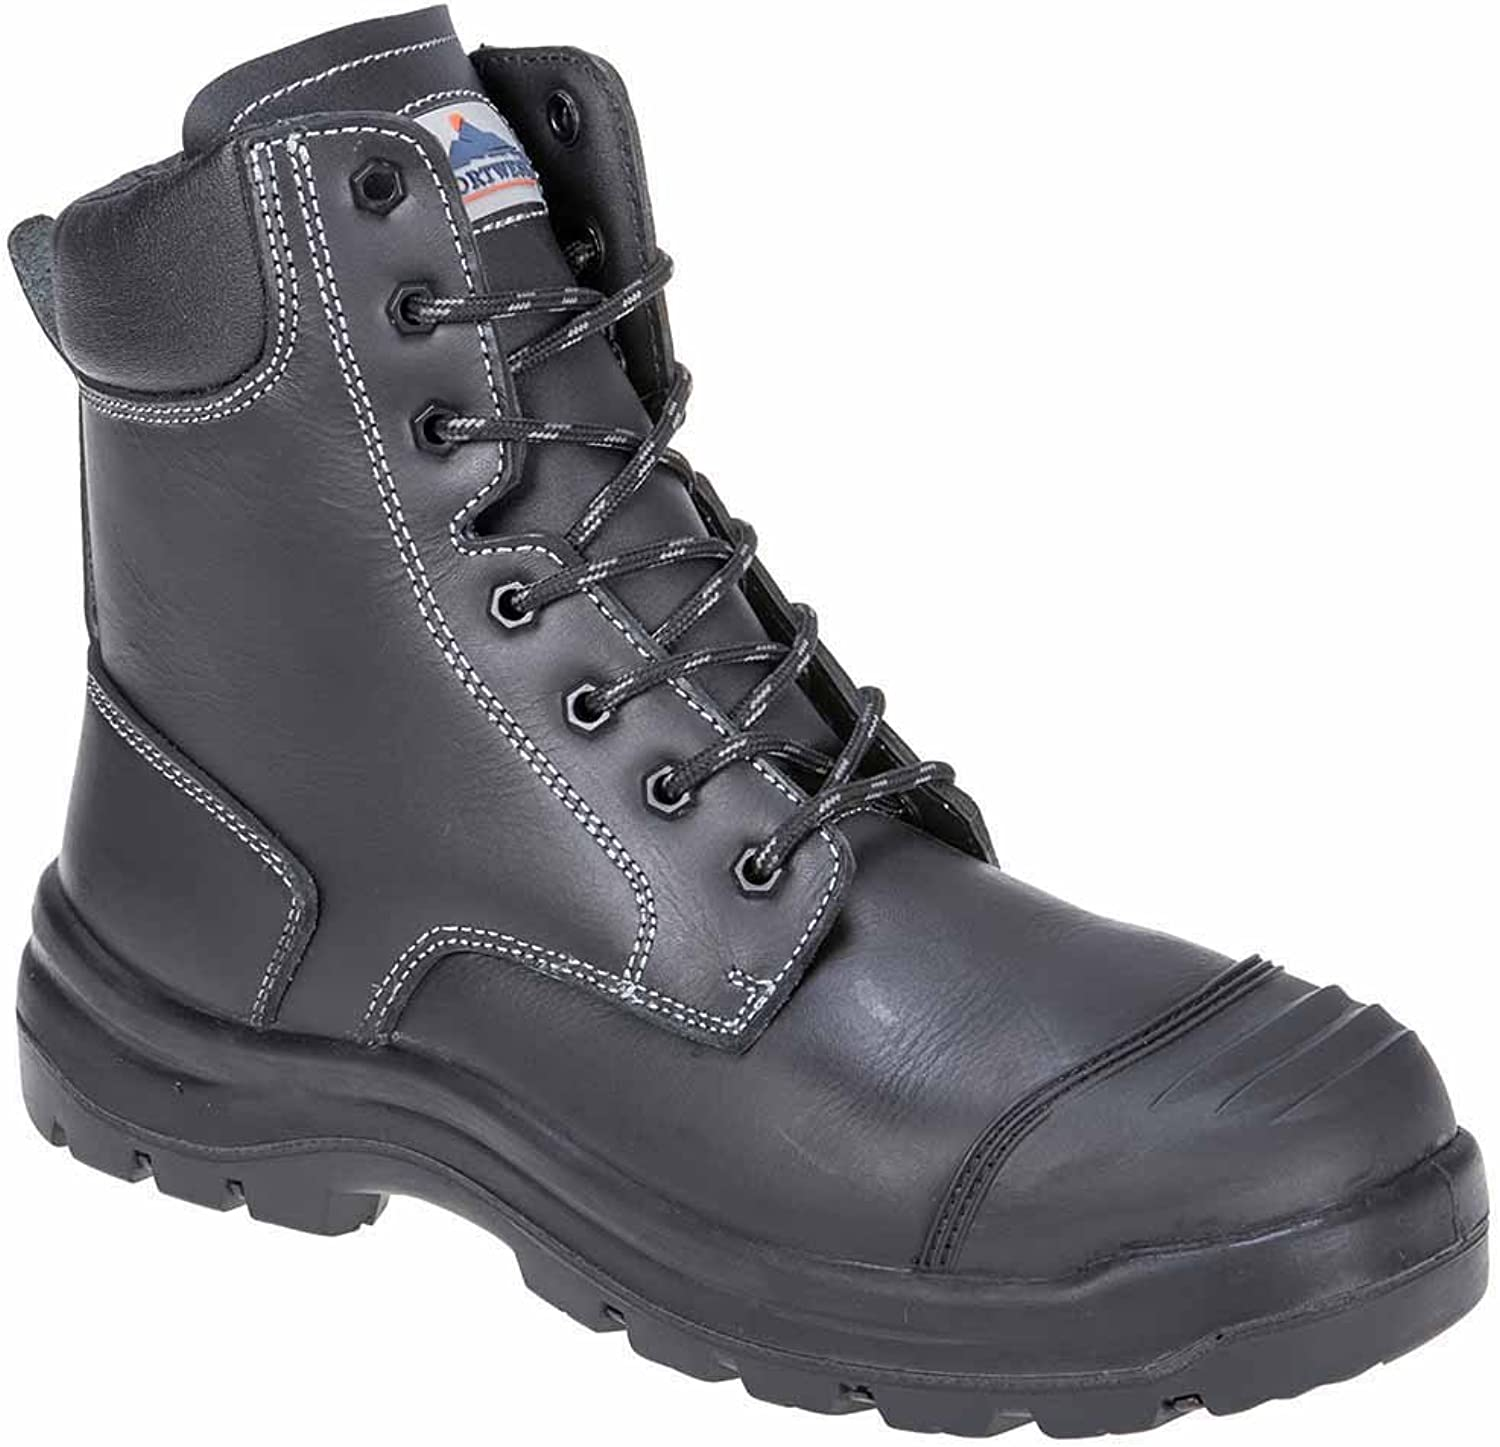 SUw - Eden Work Safety Workwear Ankle Boot S3 HRO CI HI FO - Black - UK 7